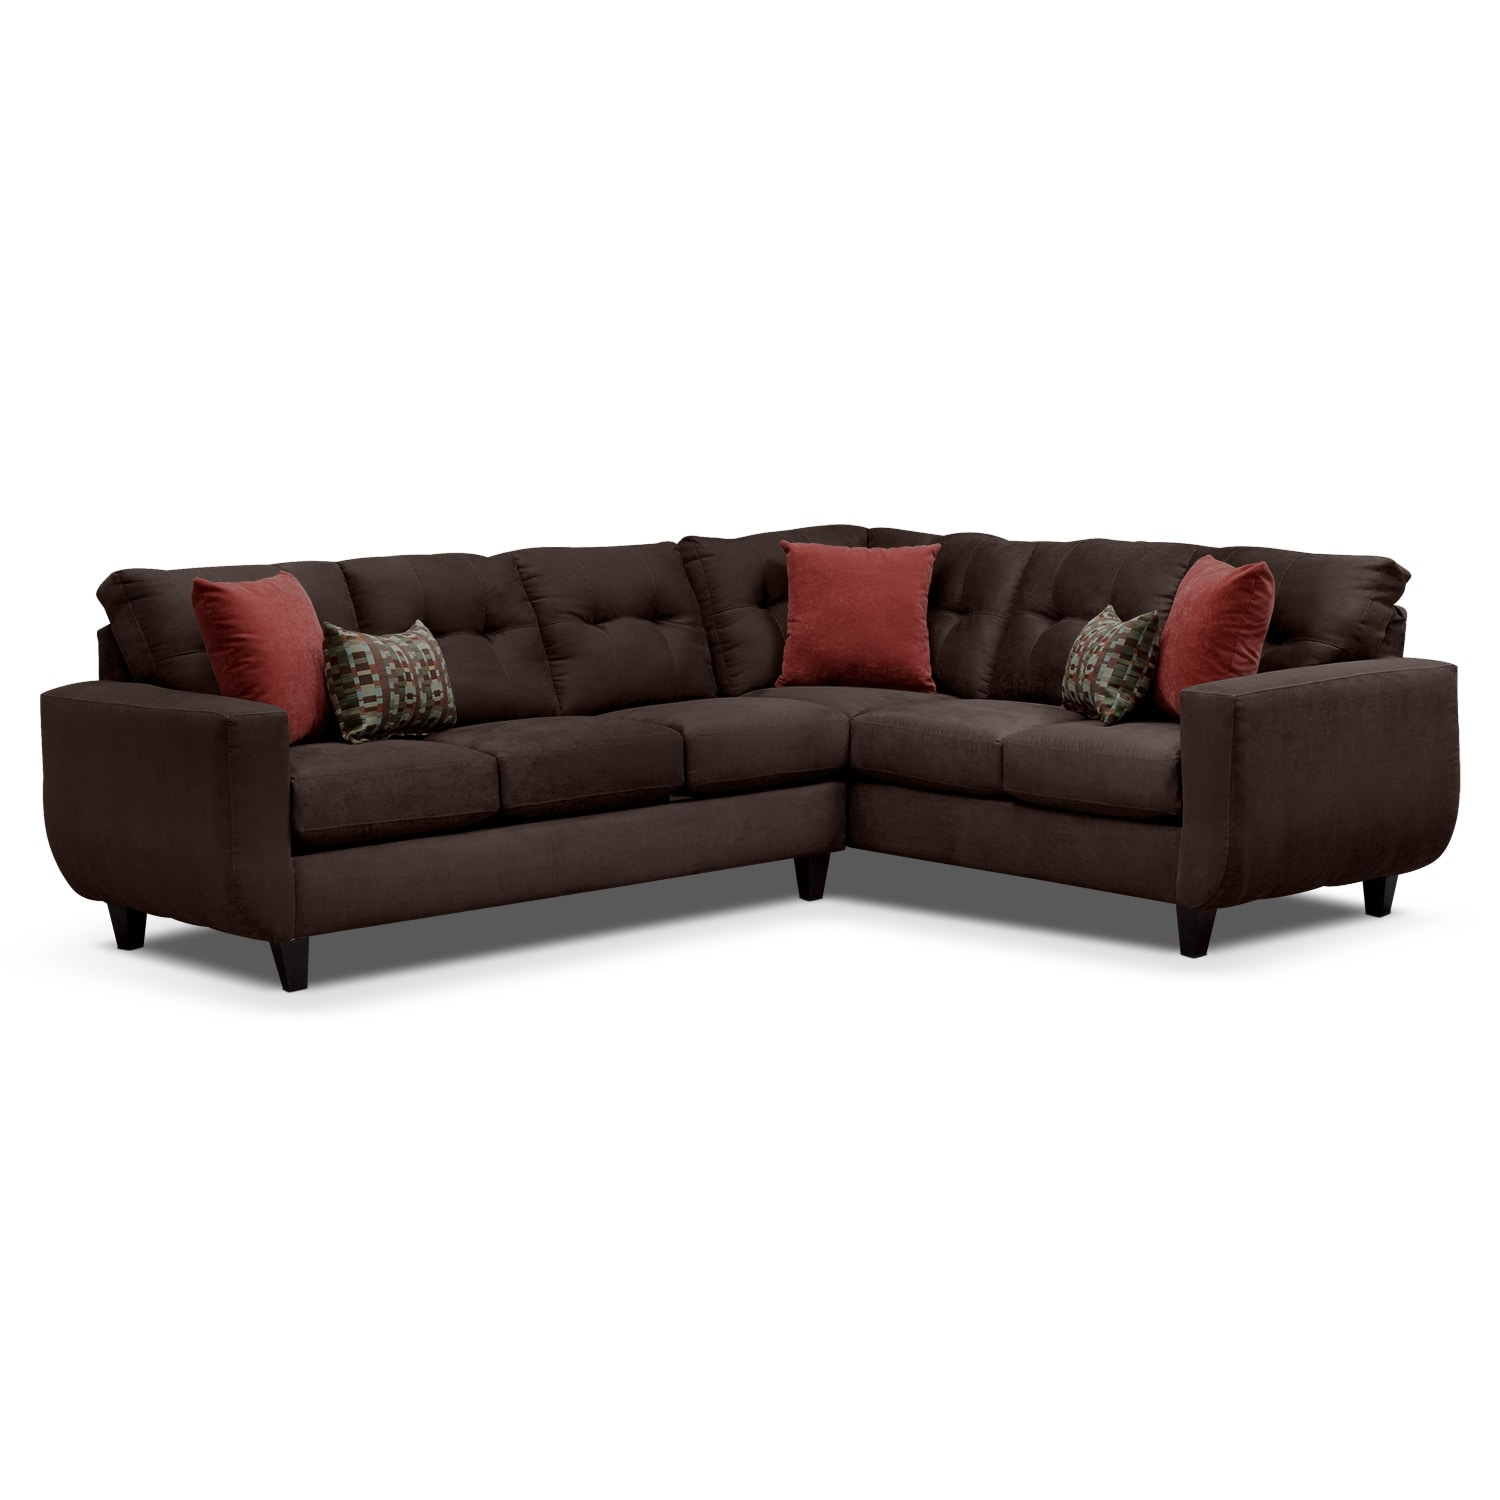 sc 1 st  Value City Furniture : vcf sectional - Sectionals, Sofas & Couches